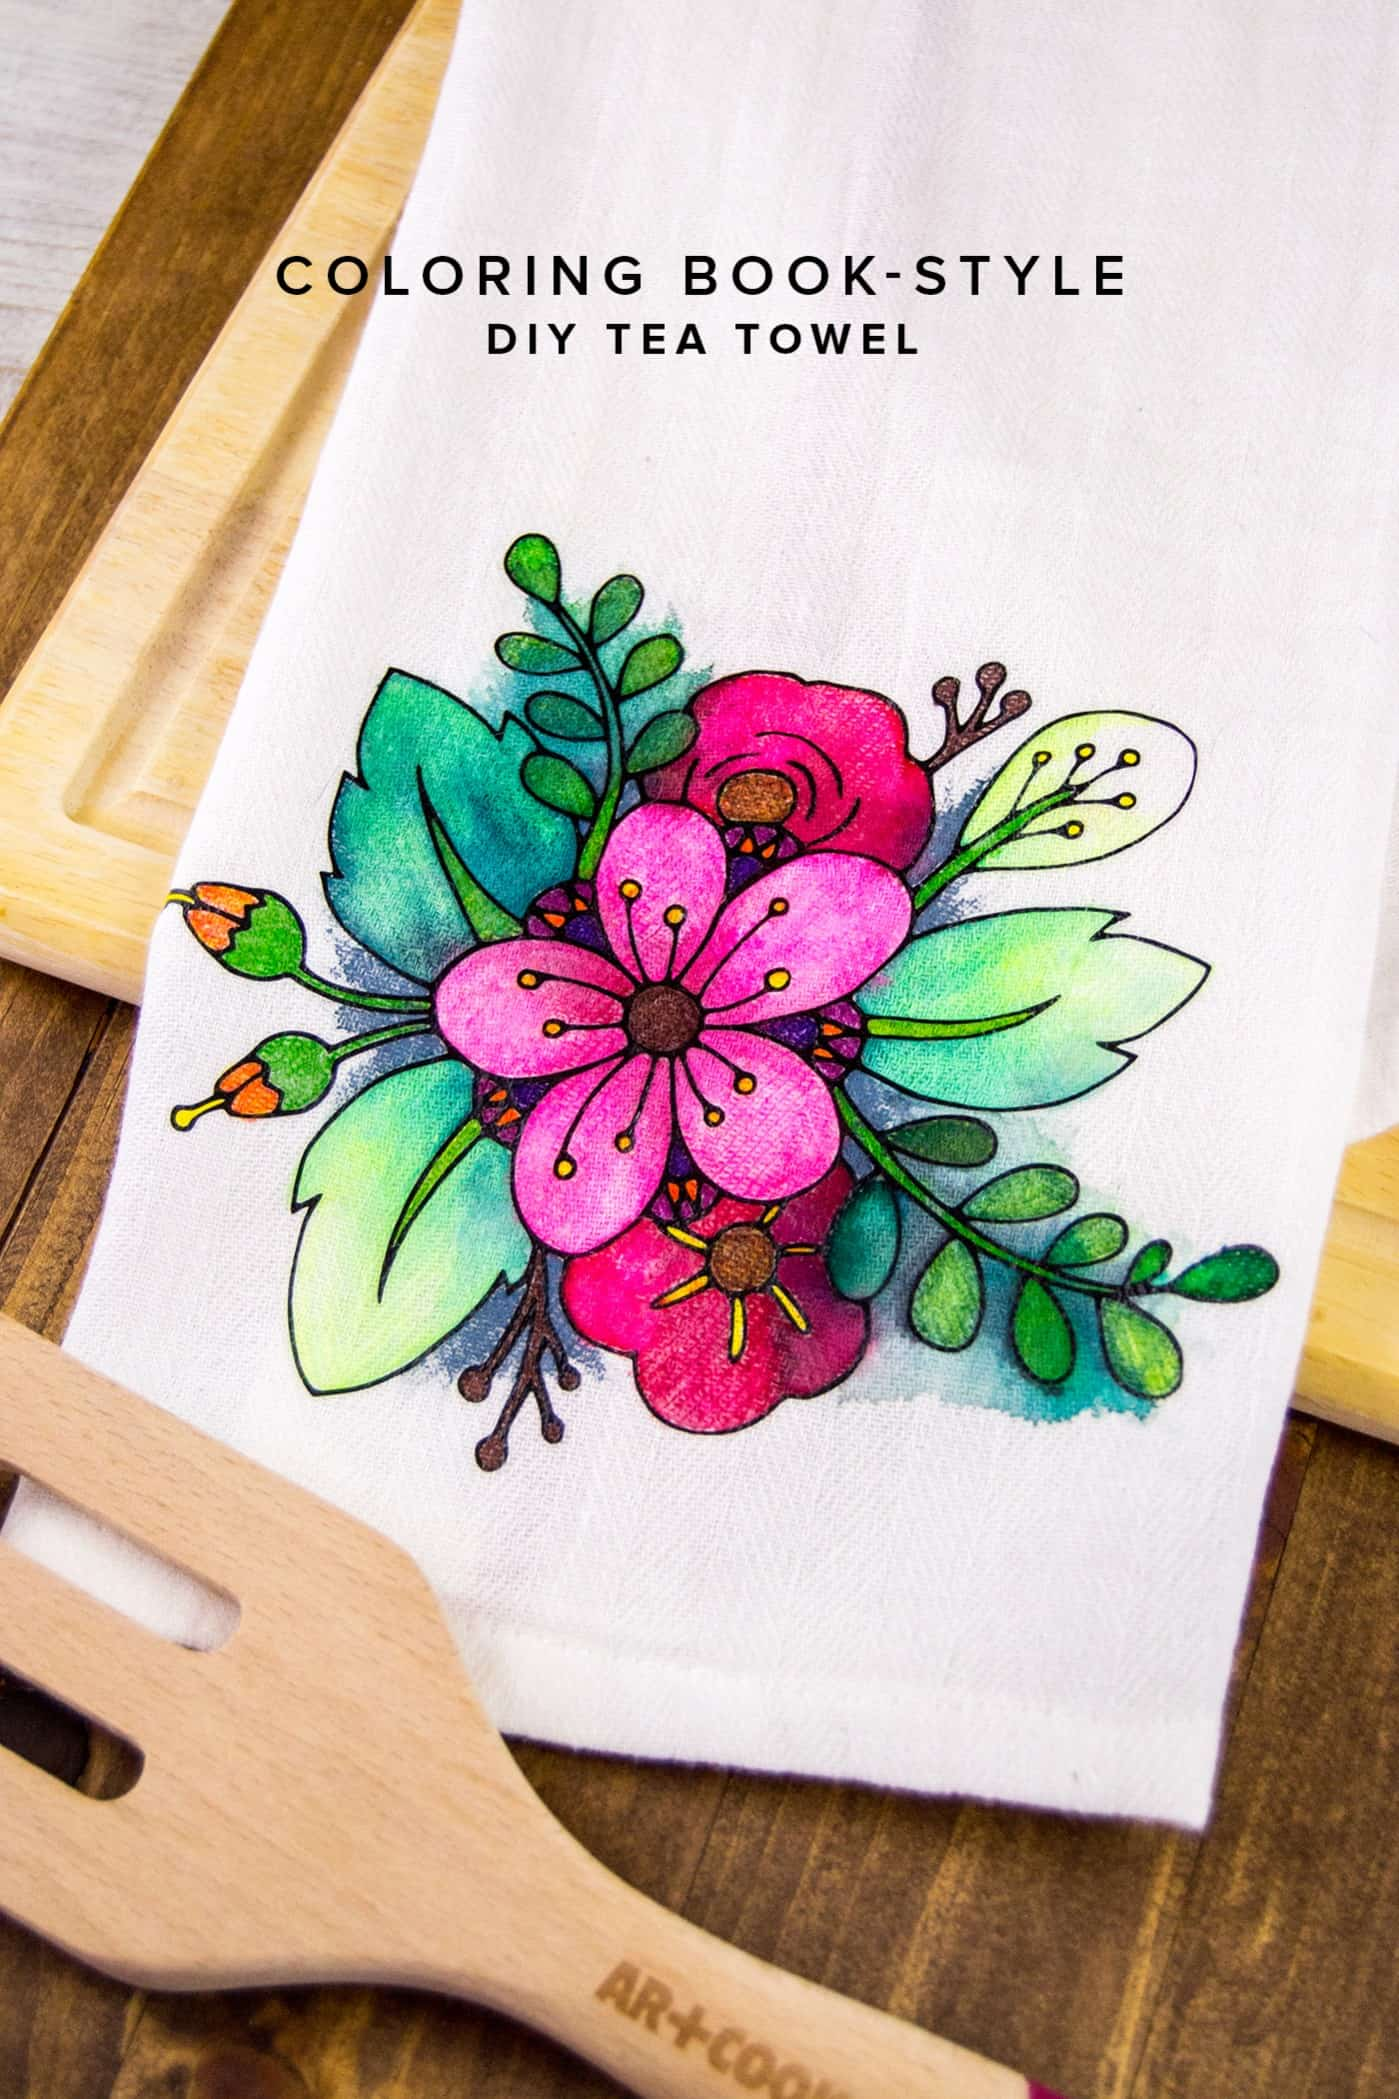 Adult coloring isn't just for the pages of a coloring book - use fabric markers on this DIY tea towel to make a unique Christmas, birthday, or hostess gift personalized with color! Great Silhouette or Cricut project.